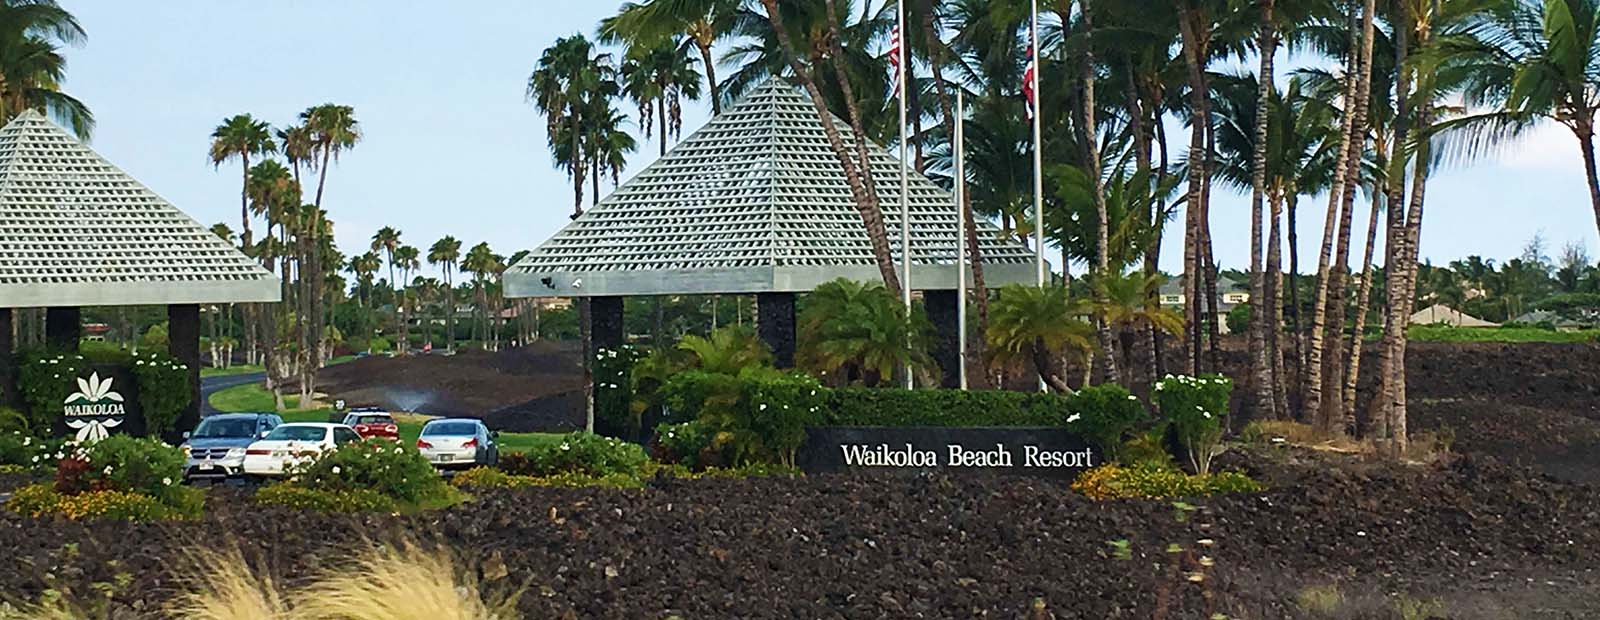 Waikoloa-Resort-Big-Island-Hawaii